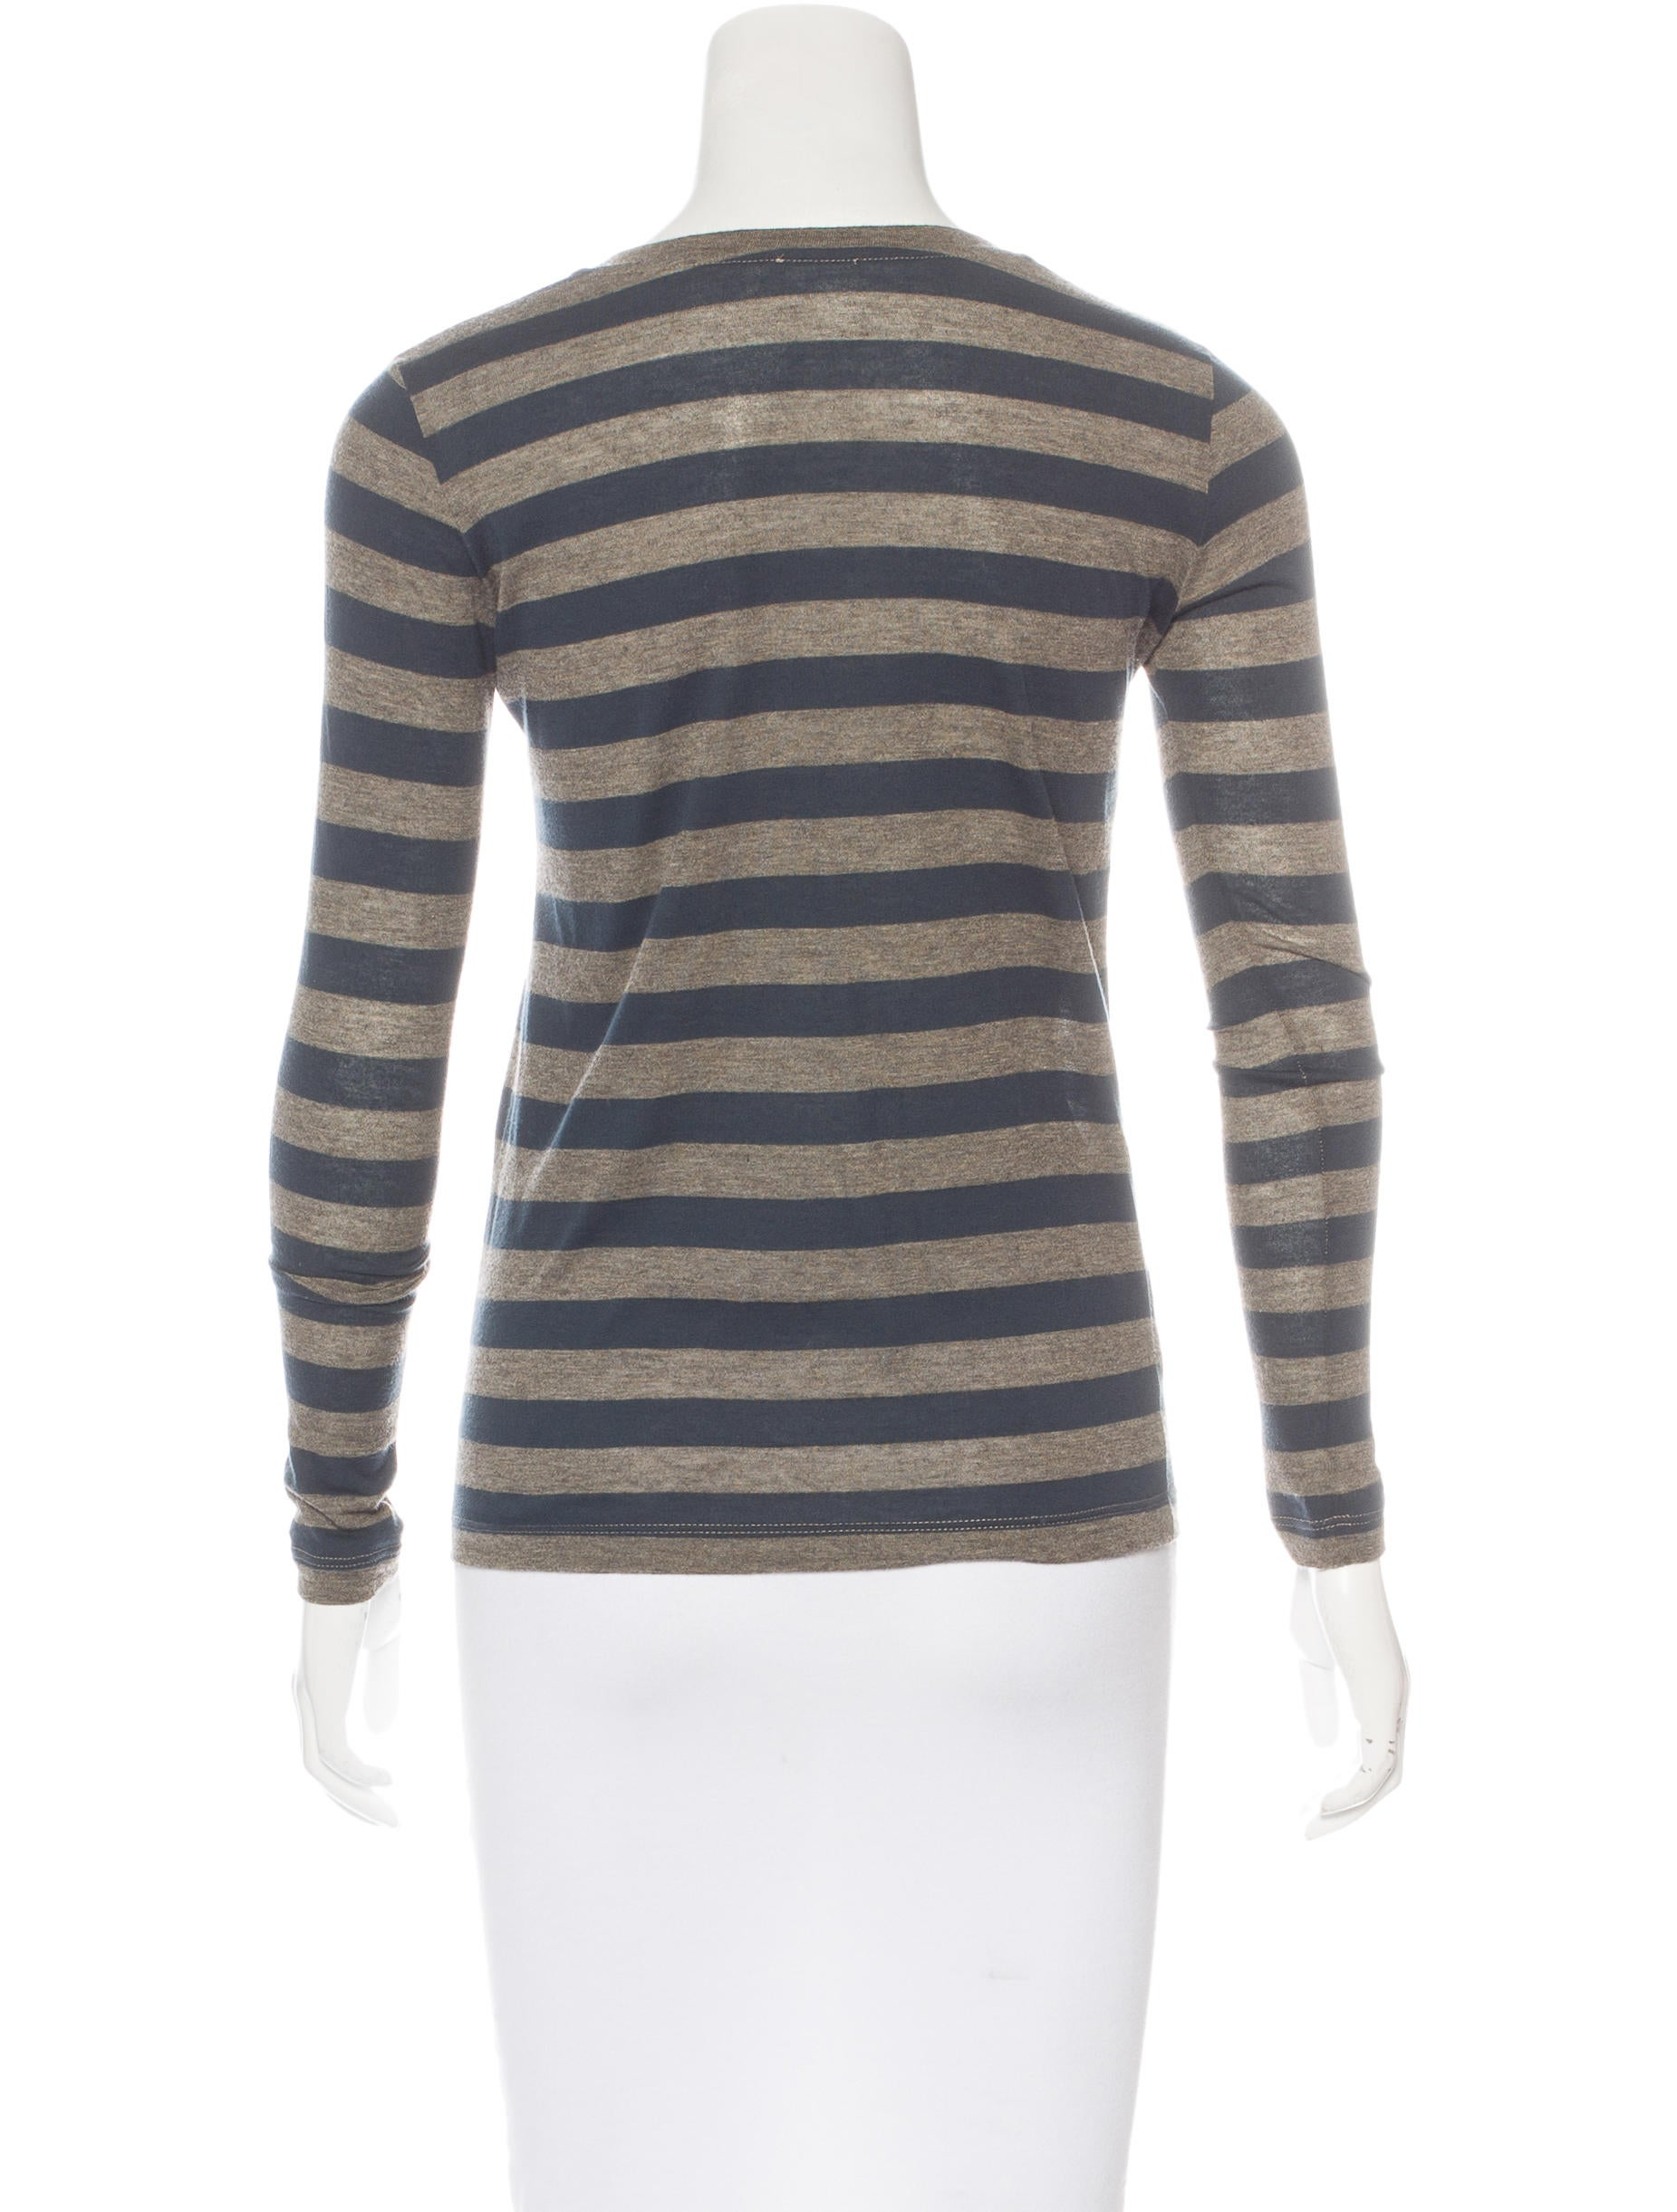 Shop for striped top at cpdlp9wivh506.ga Free Shipping. Free Returns. All the time.